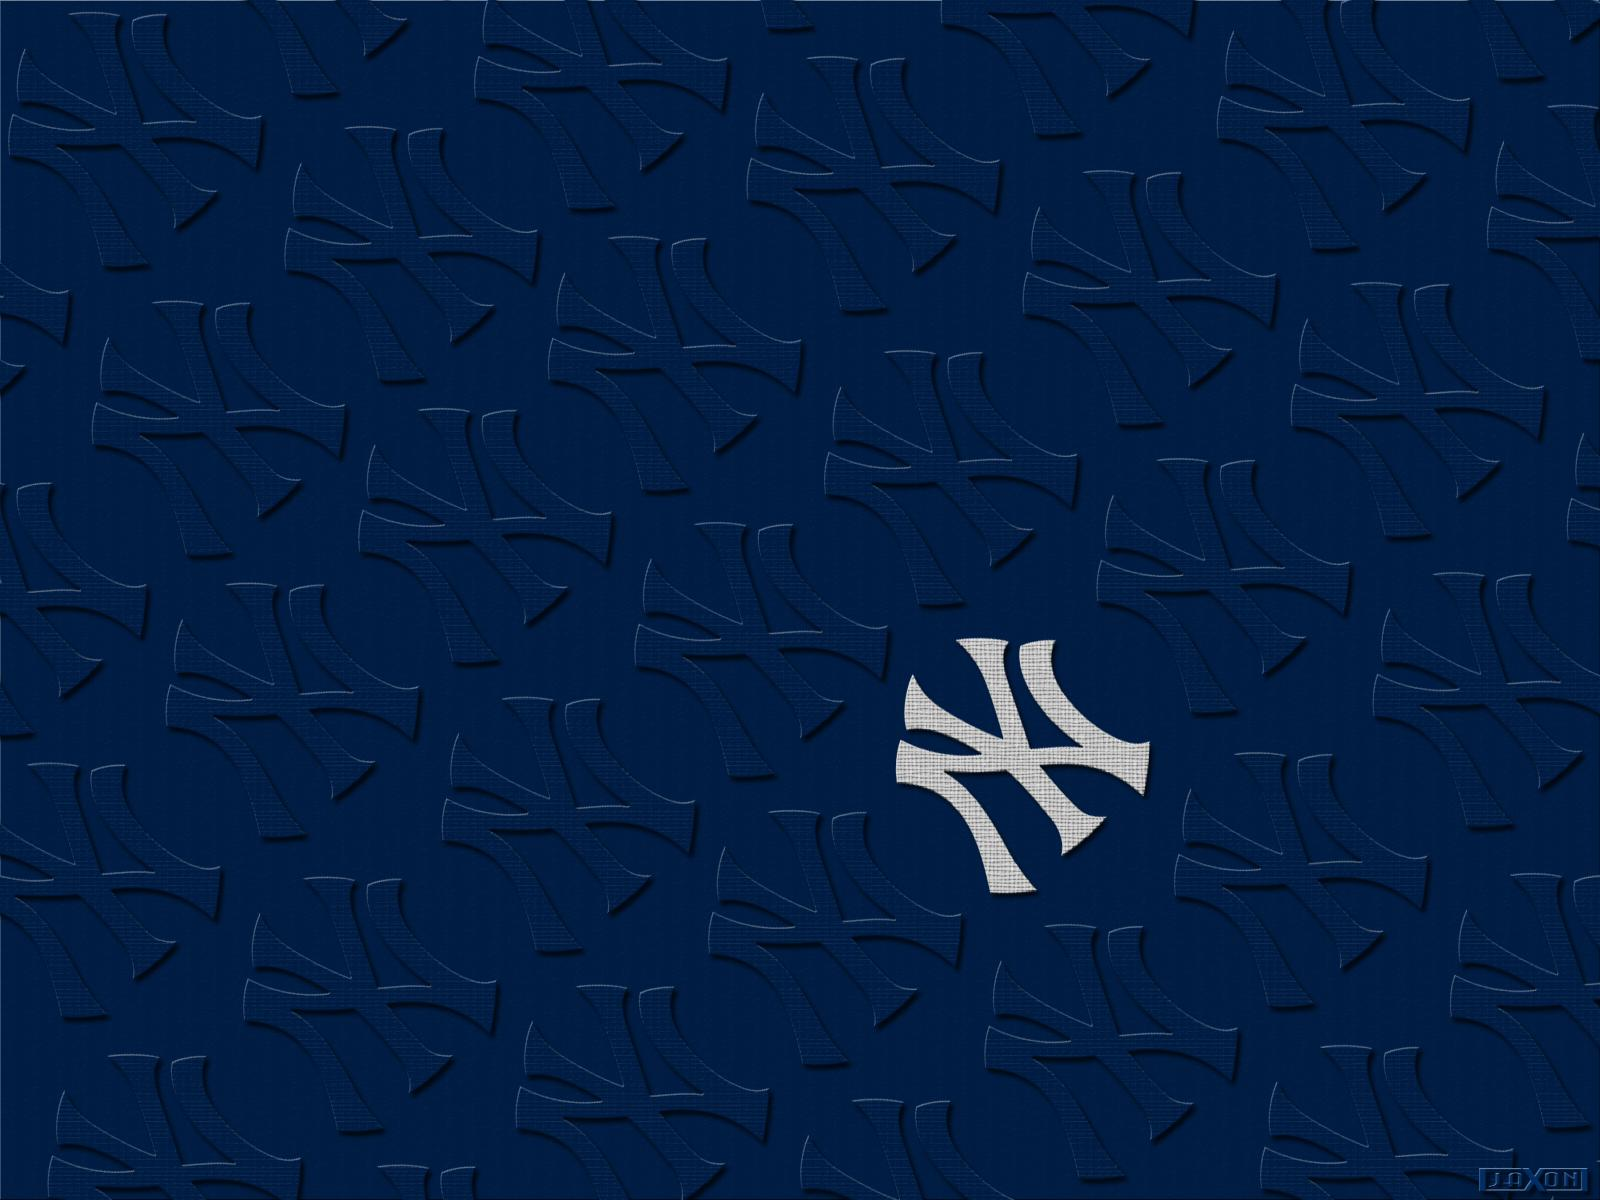 Yankees Wallpapers BlackBerry Forums at CrackBerry New York Yankees Backgrounds  Pixels Talk 1600x1200